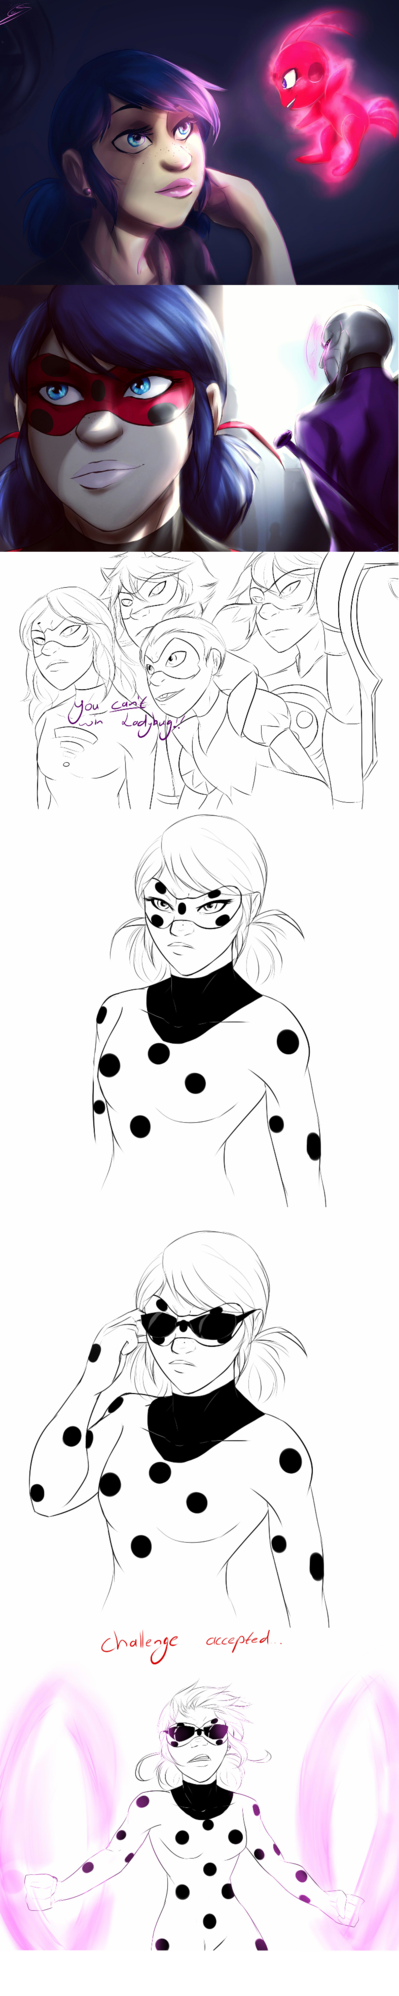 I can imagine Ladybug having troubles with the idea of another Volpina and who better to help with that than Alya?